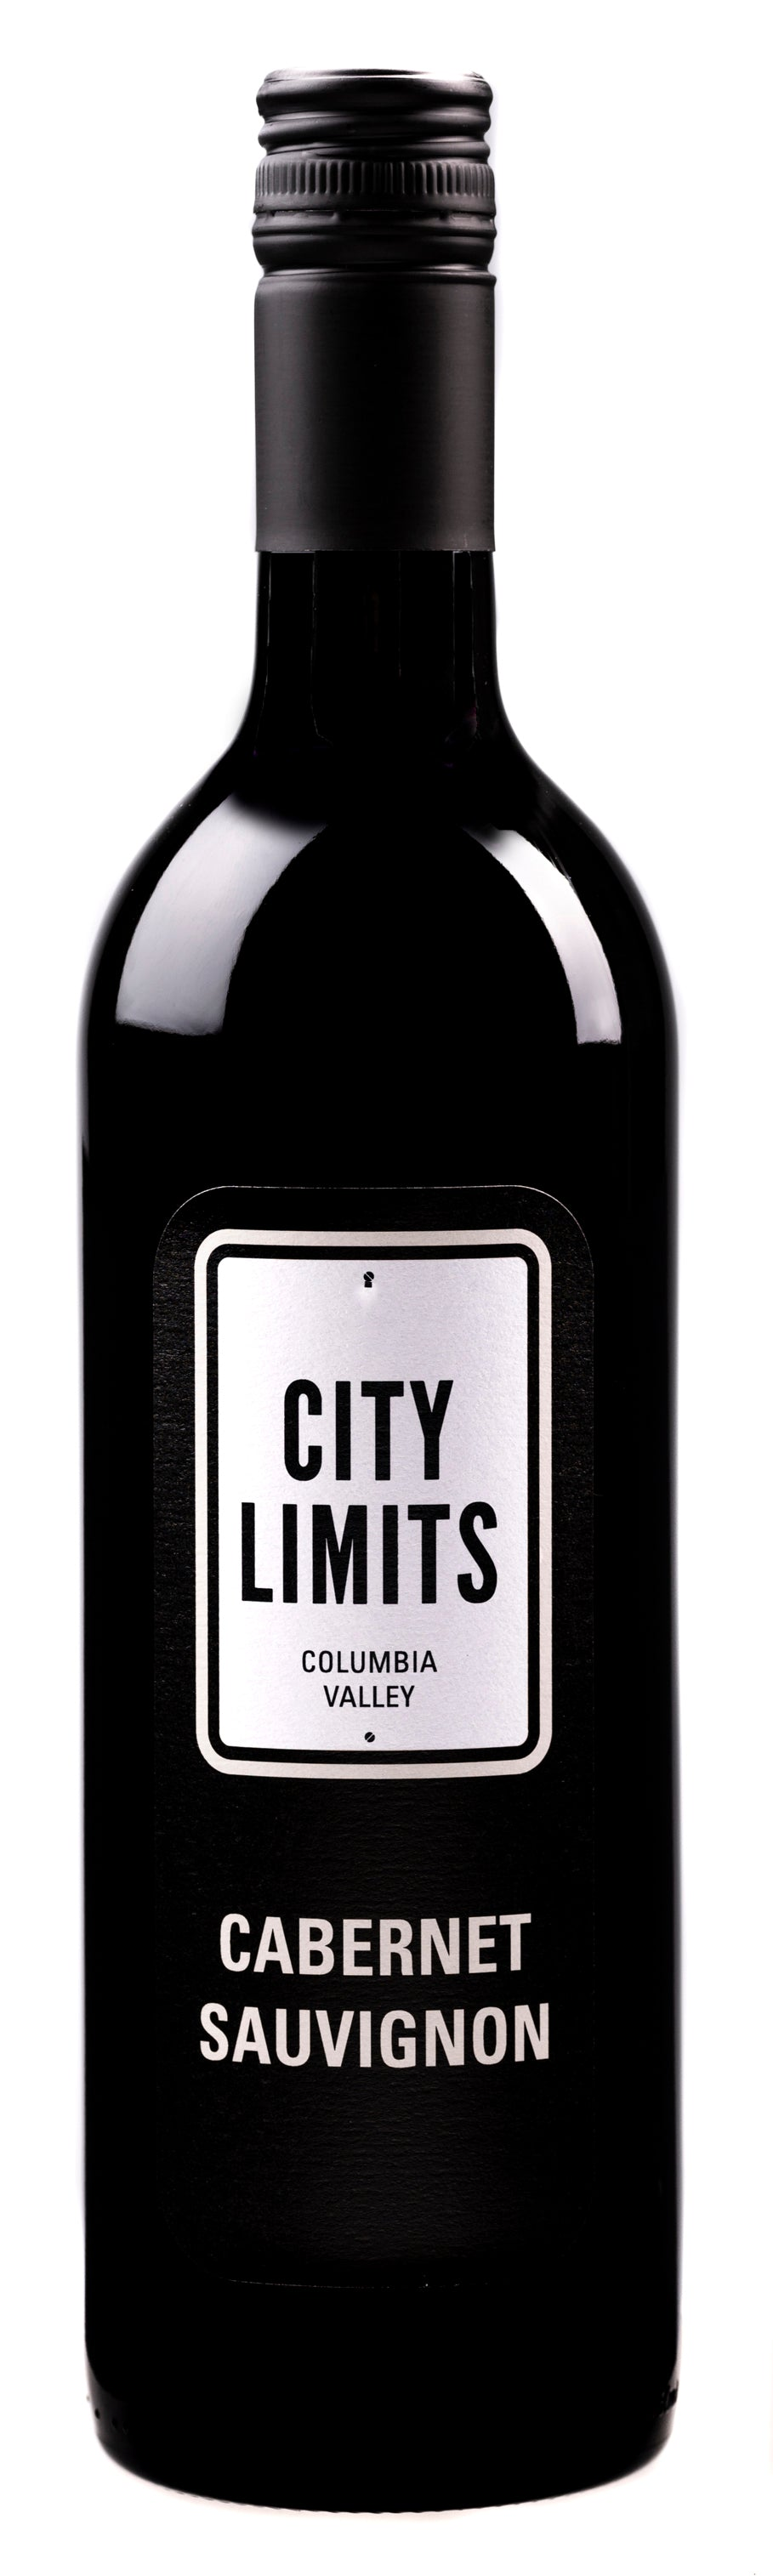 2016 City Limits Cabernet Sauvignon